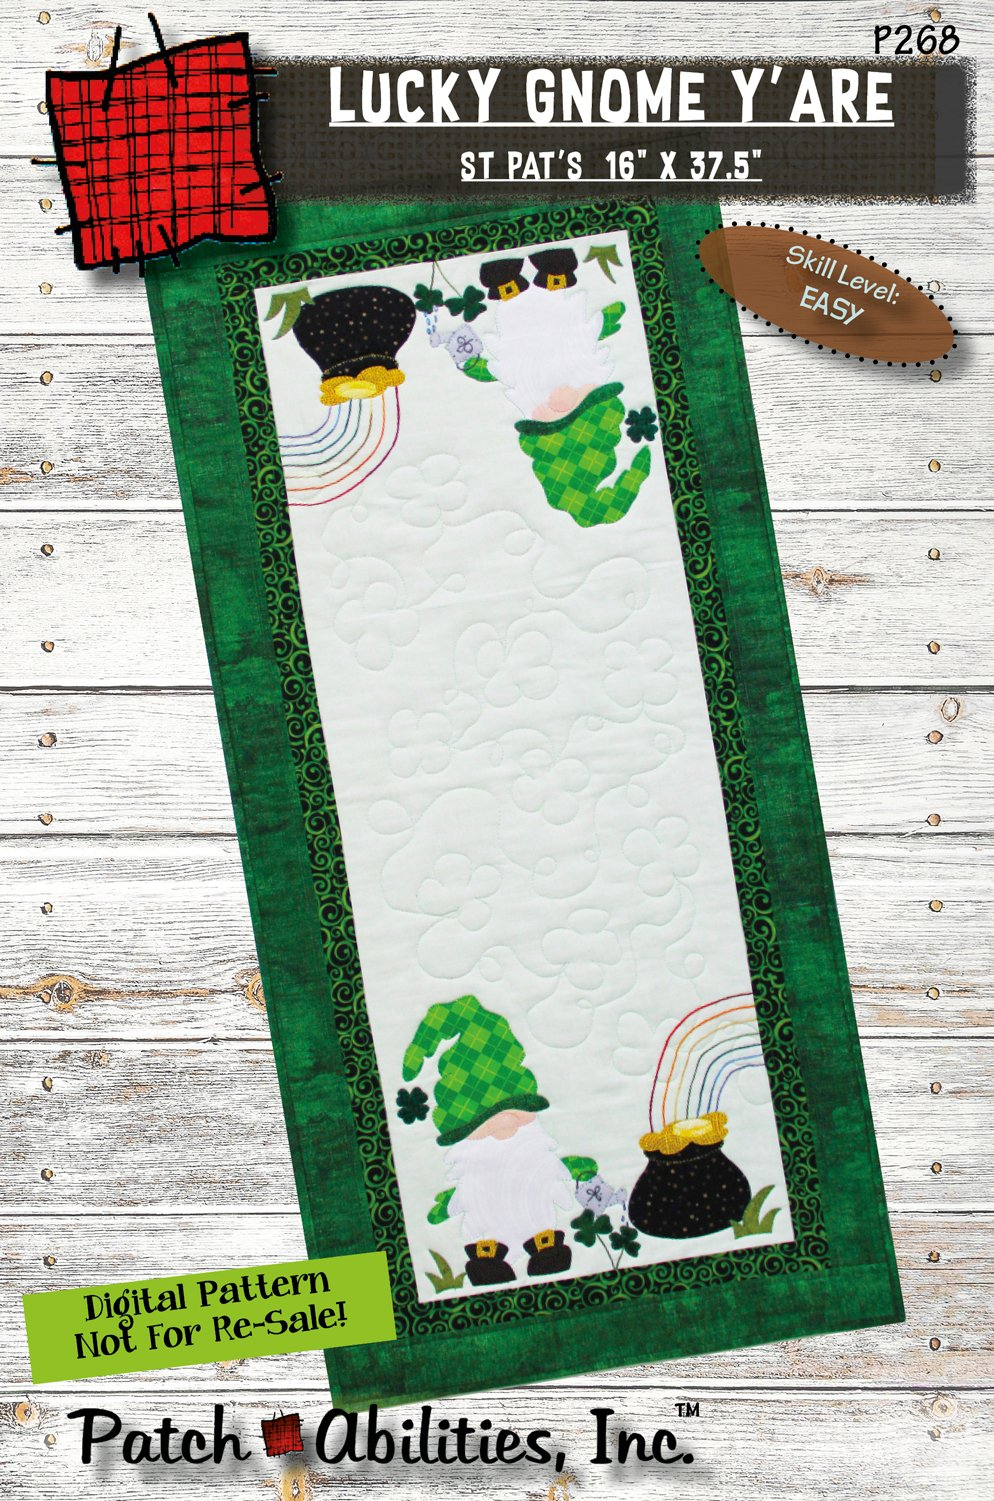 P268 Lucky Gnome Y'are Table Runner - DIGITAL DOWNLOAD PATTERN